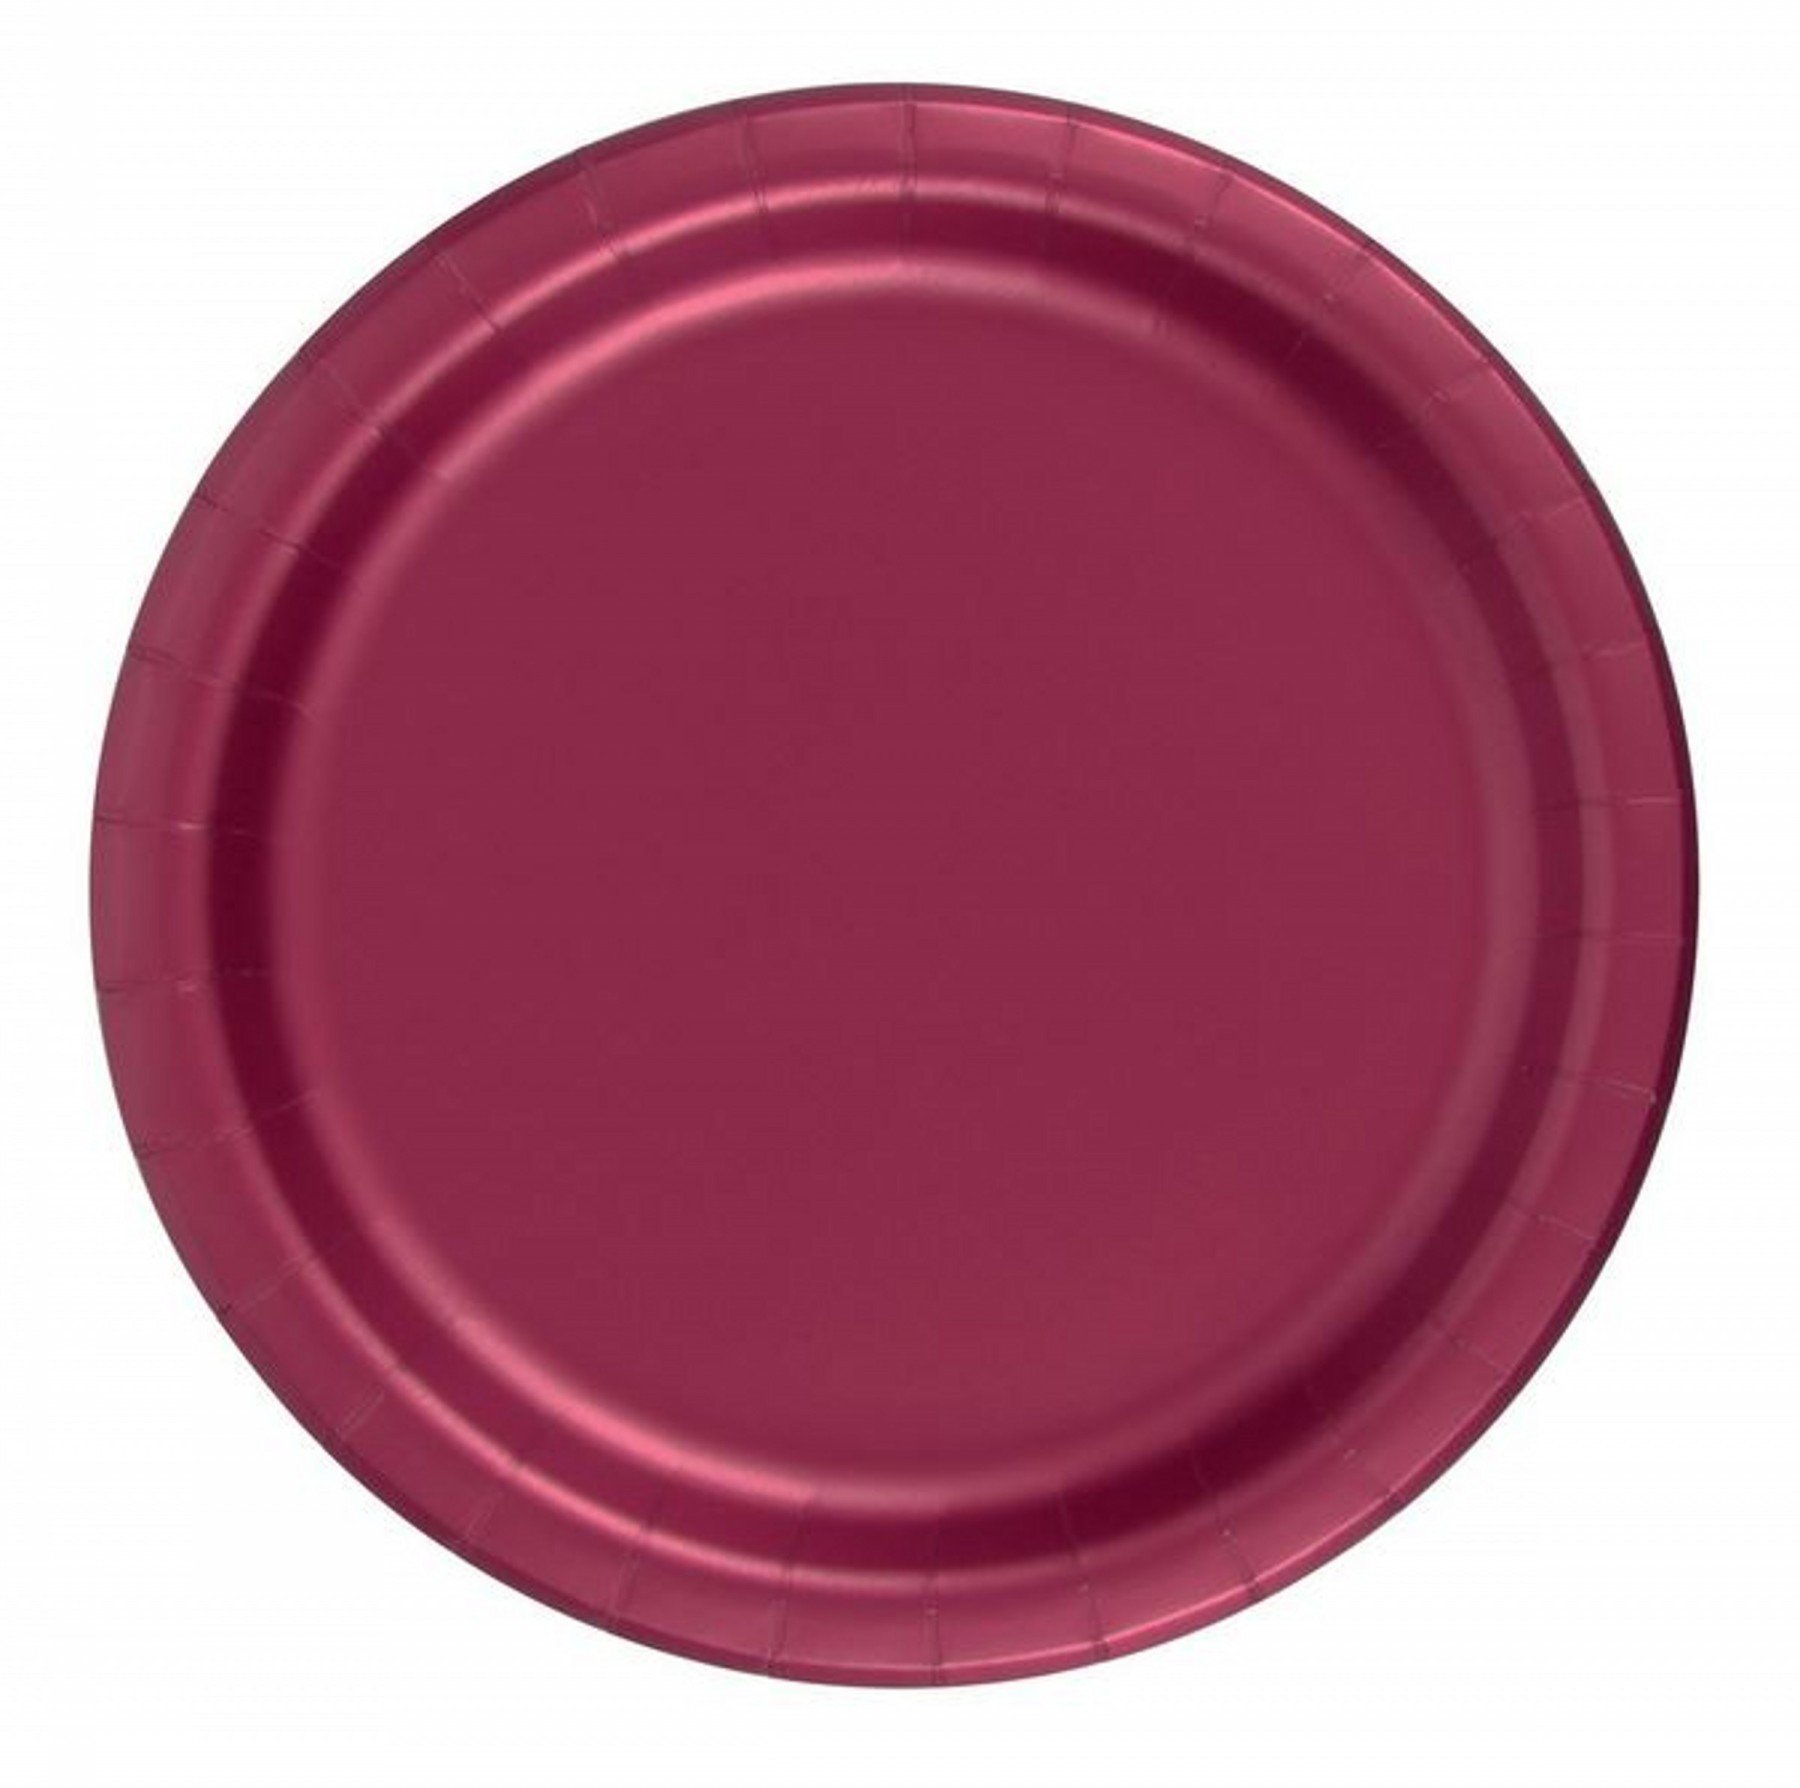 240 Burgundy Wine (10 Pks of 24) 7 Inch Wax Coated Plain Solid Color Dessert Cake Paper Plates